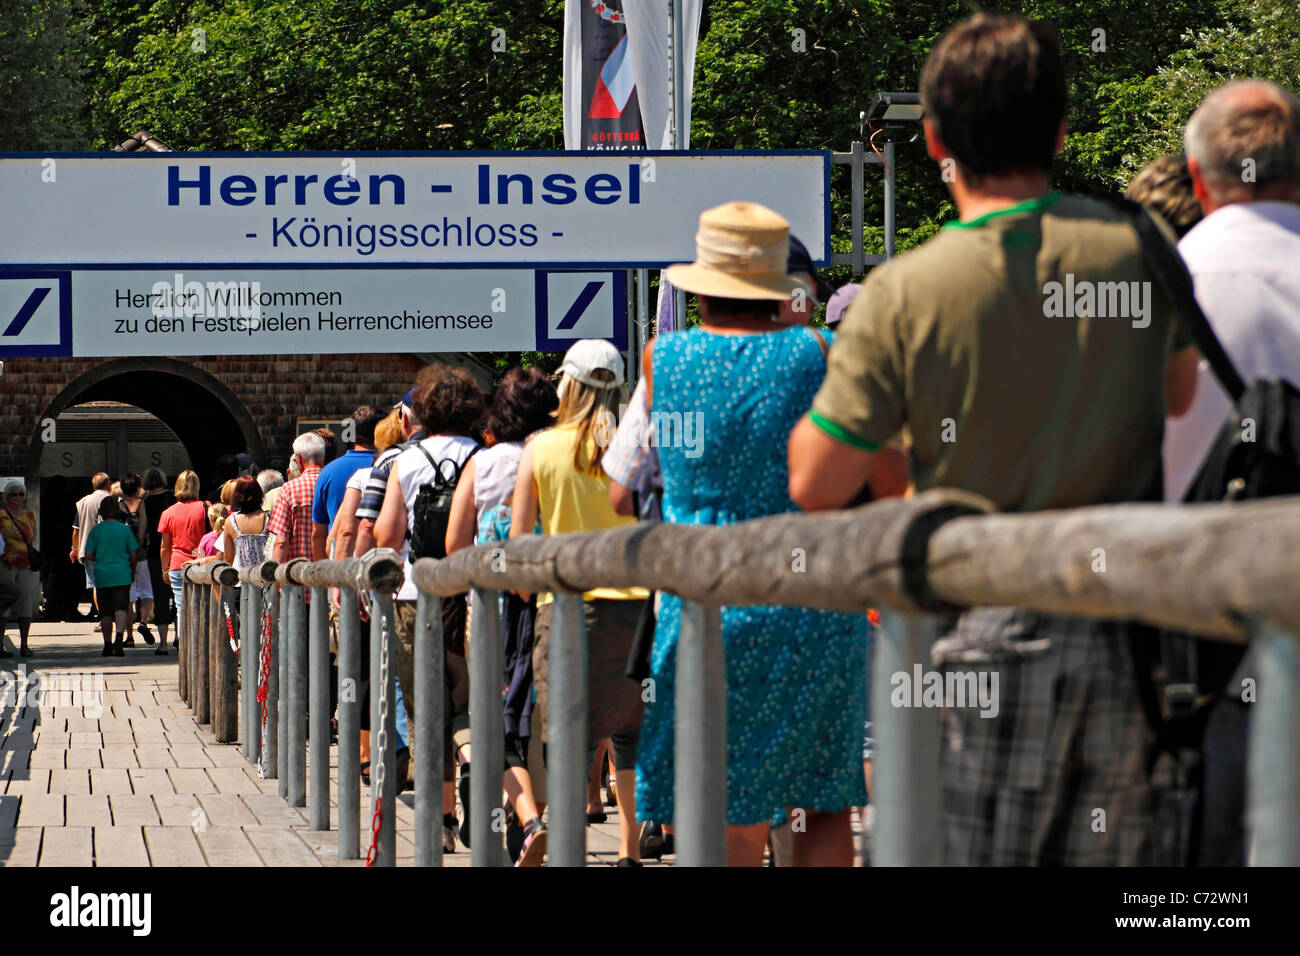 People on a wooden pier at the Herrenchiemsee, Herreninsel Upper Bavaria Germany - Stock Image